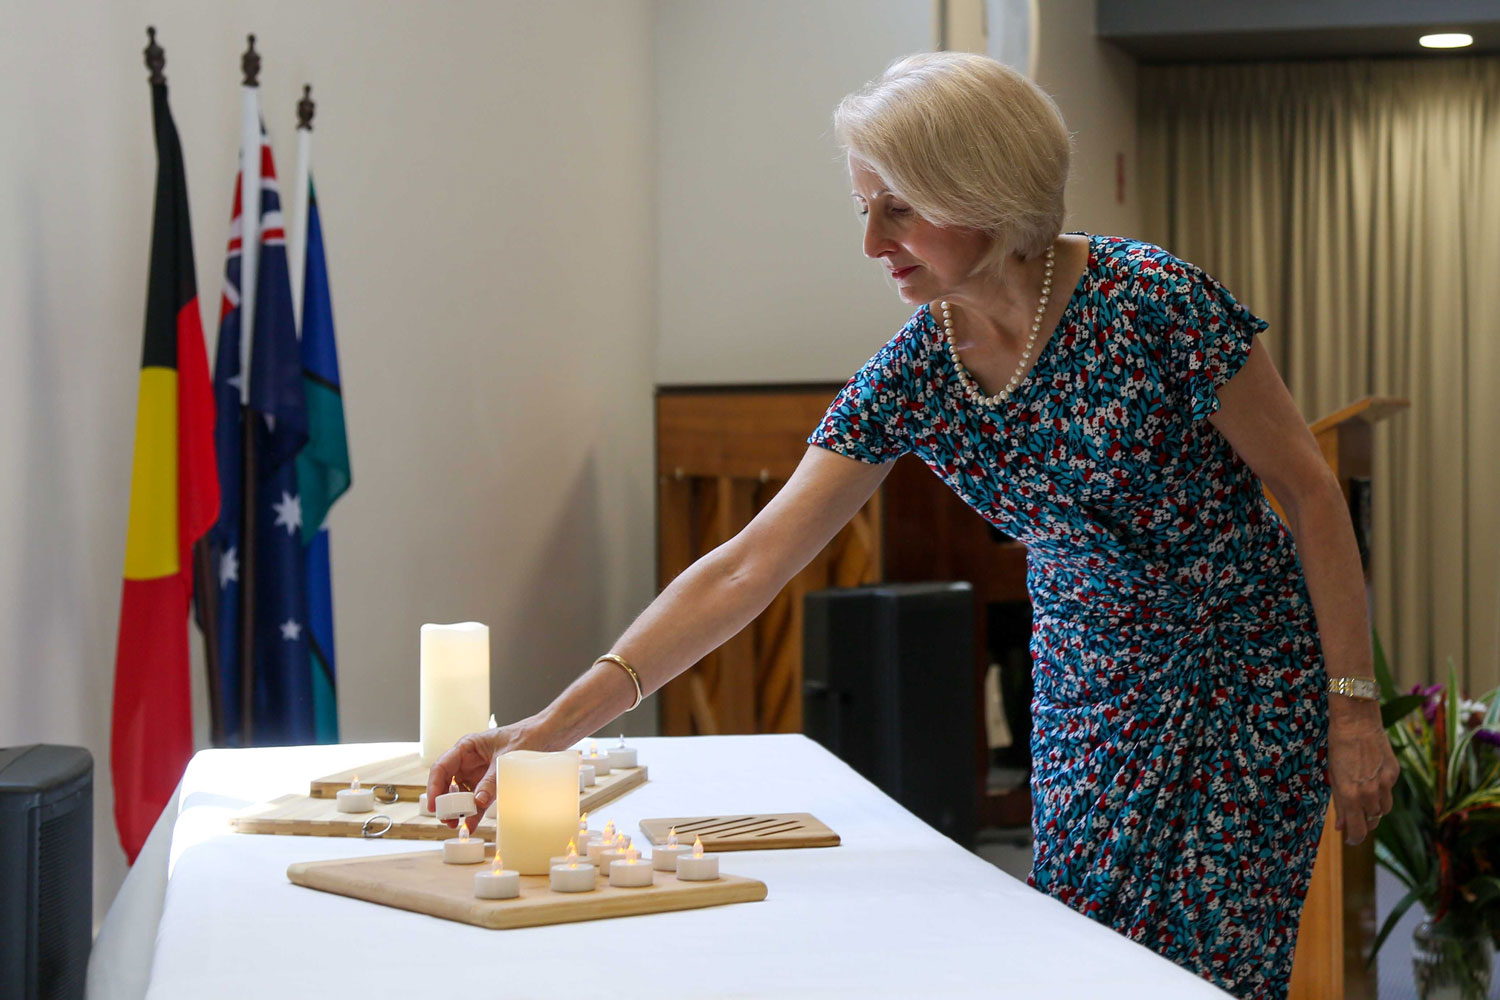 a woman reaches to place an electric candle on a table among others